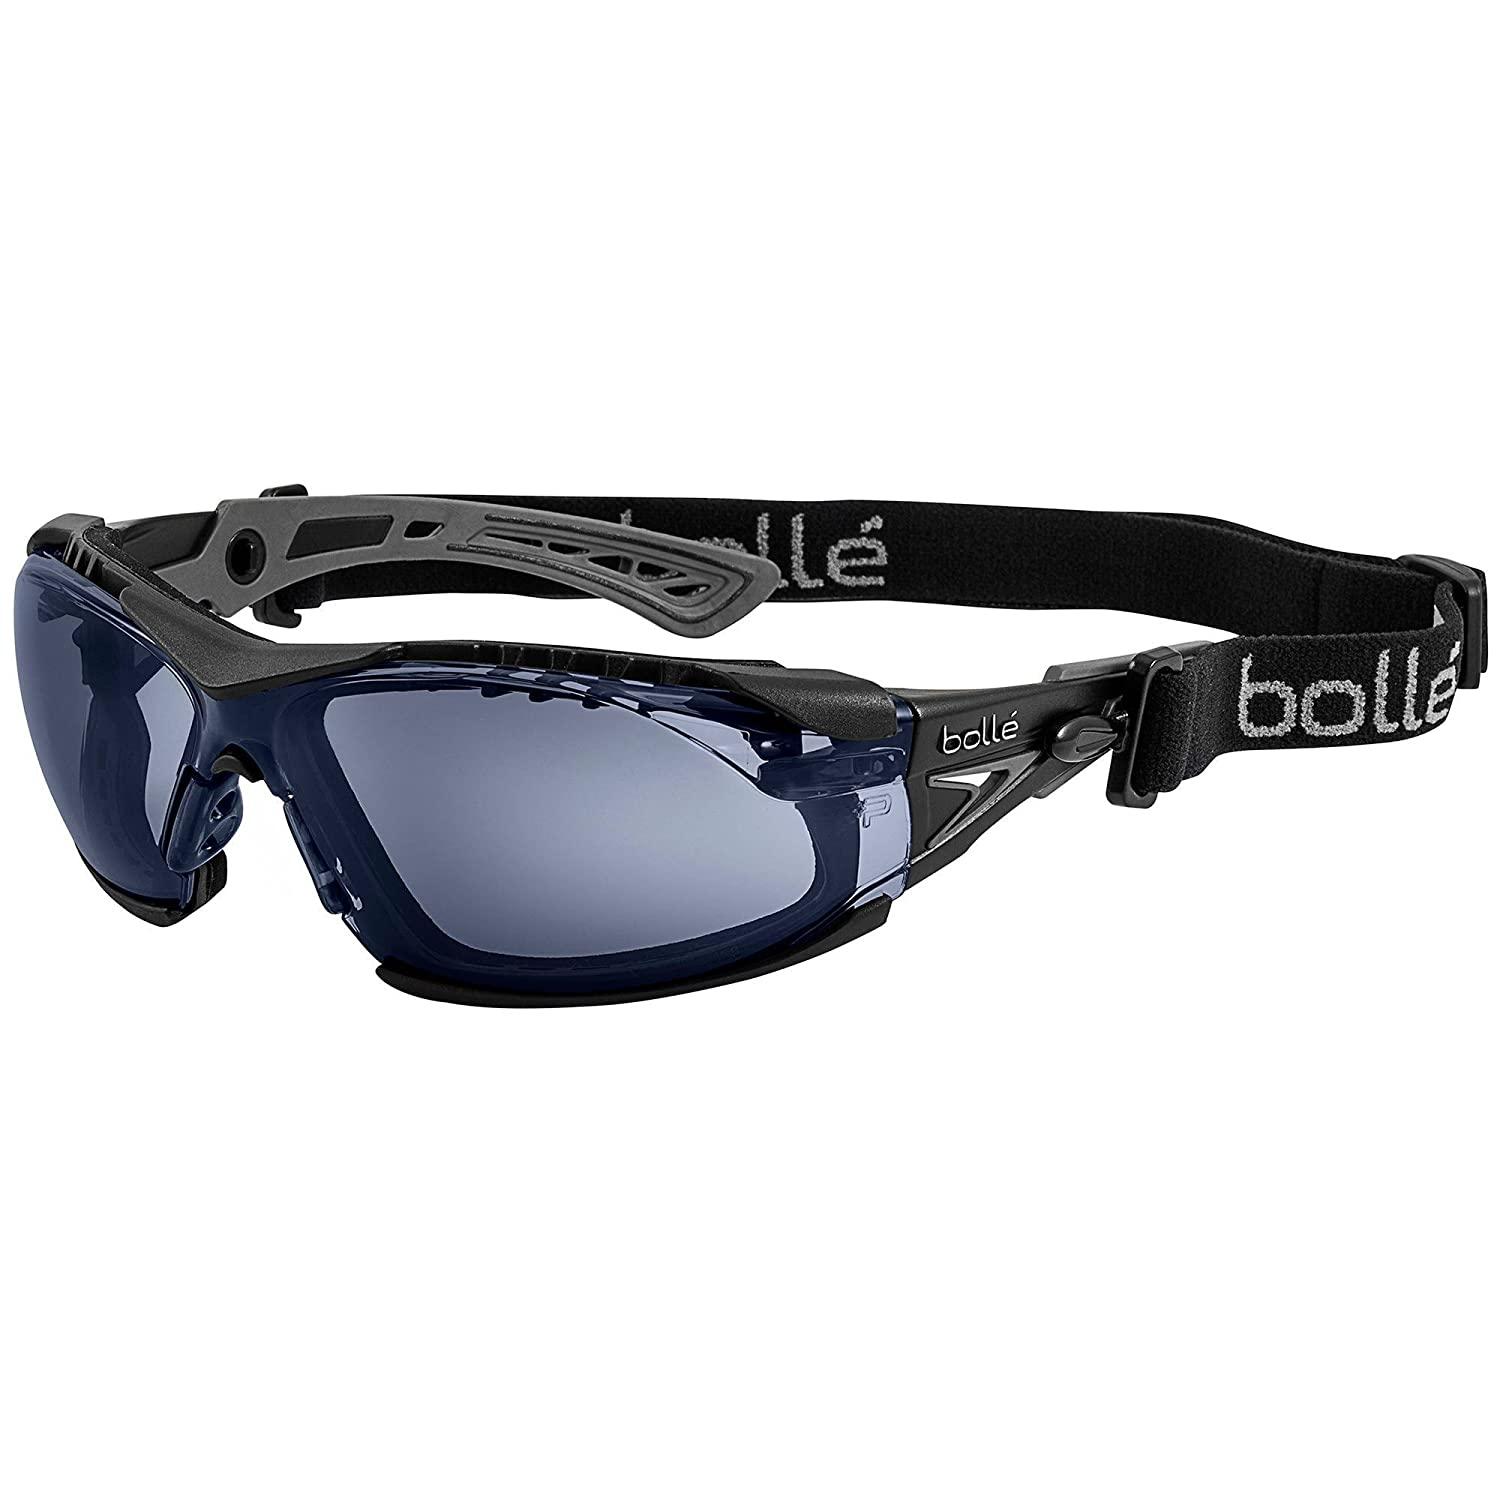 Black /& Grey Frame Bolle Safety Rush Twilight Lenses Safety Glasses with Assembled Foam and Strap